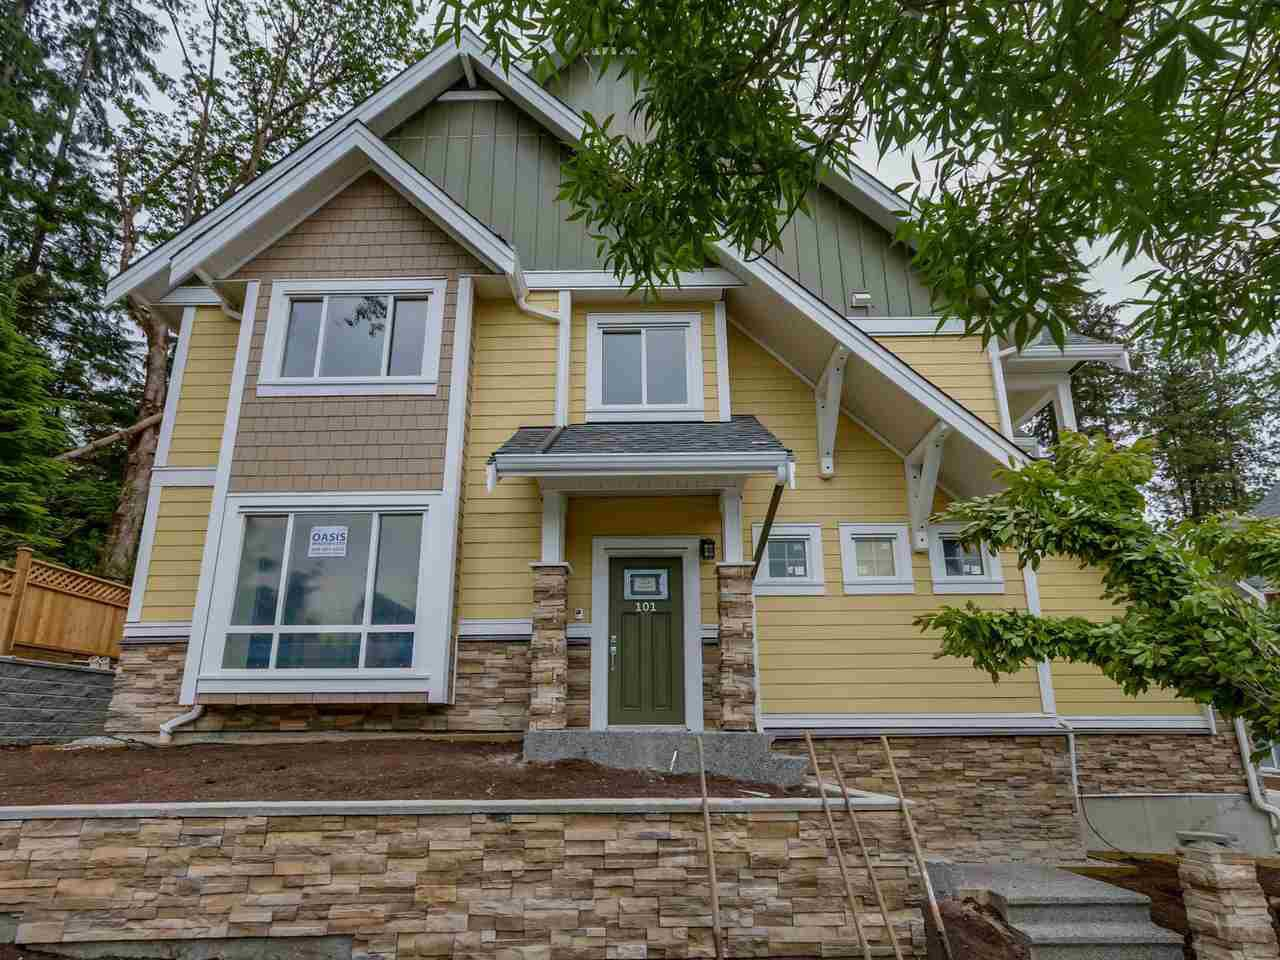 """Main Photo: 101 1405 DAYTON Street in Coquitlam: Burke Mountain Townhouse for sale in """"ERICA"""" : MLS®# R2075861"""